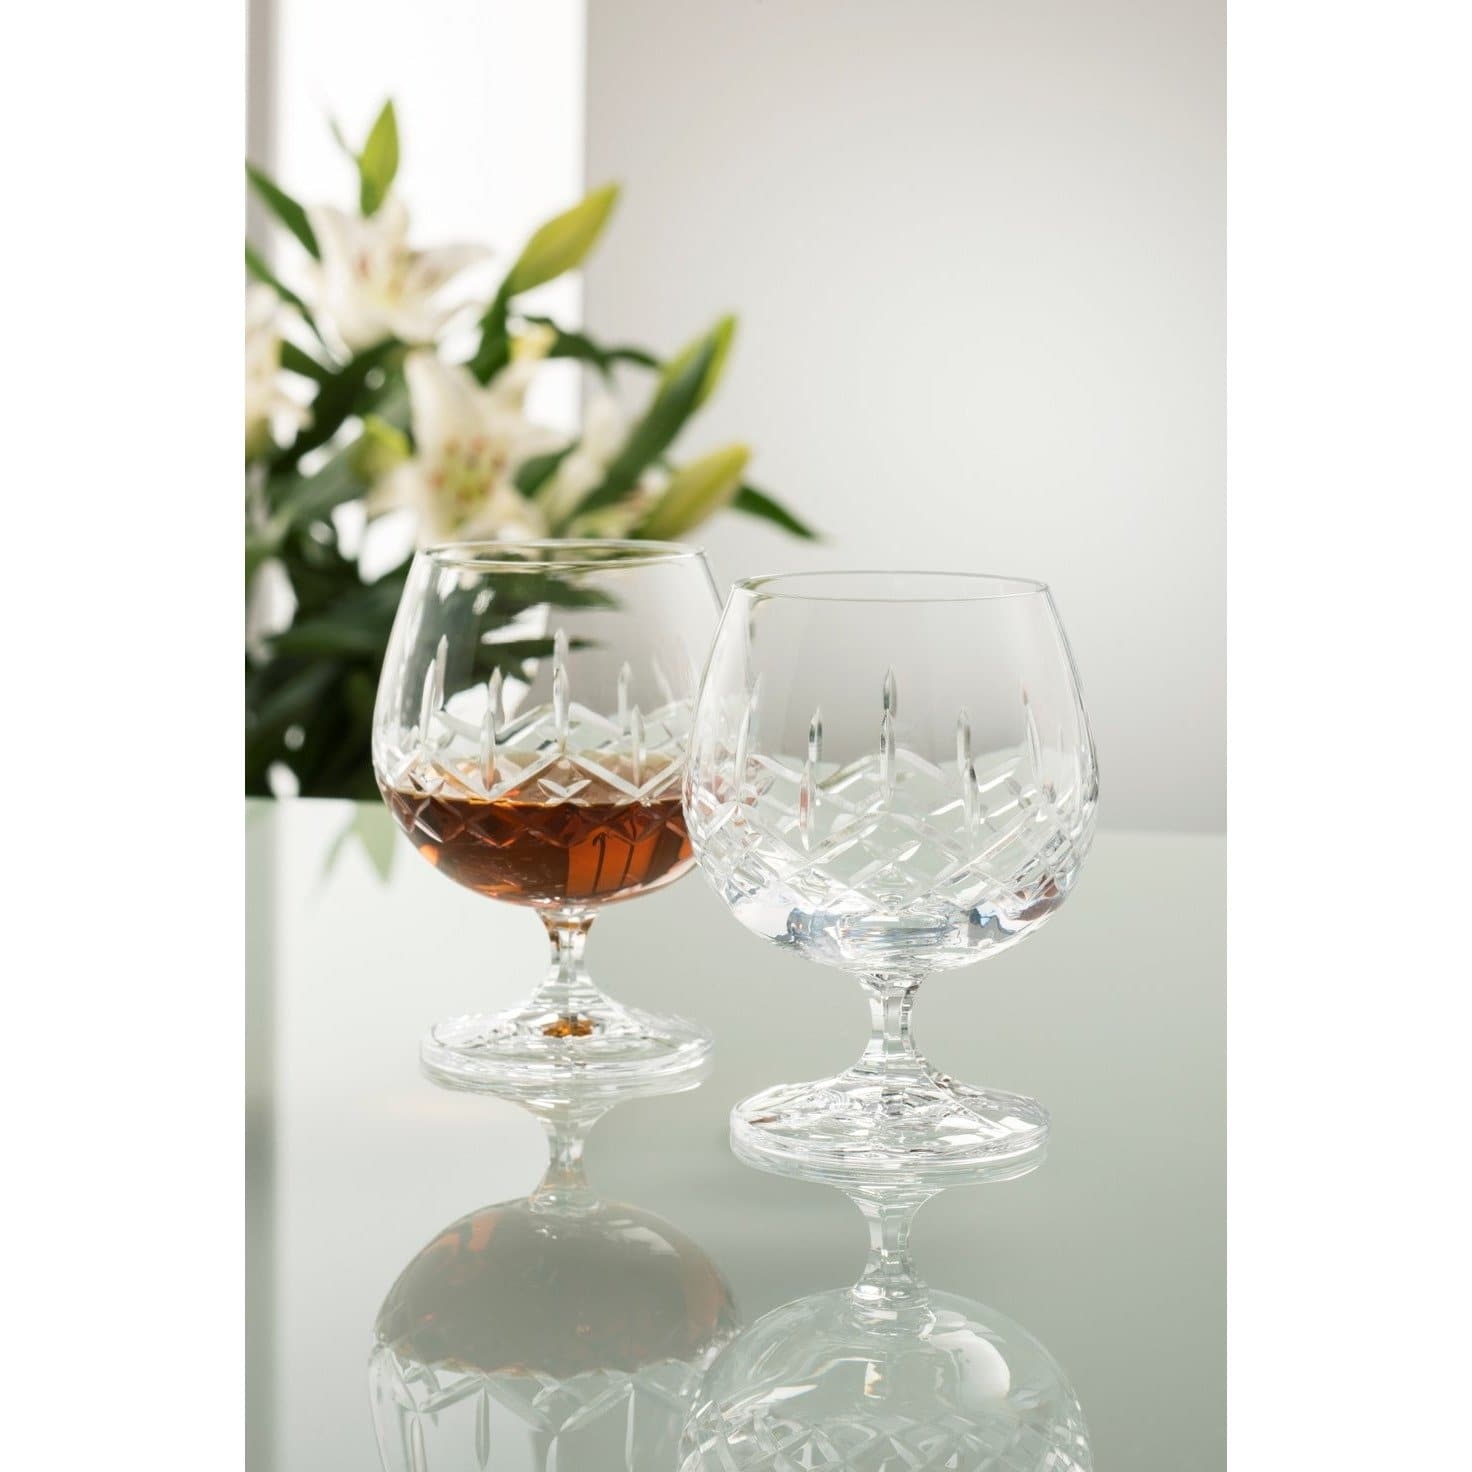 Engraved NEW Longford Brandy (Pair) G222972E - Galway Irish Crystal